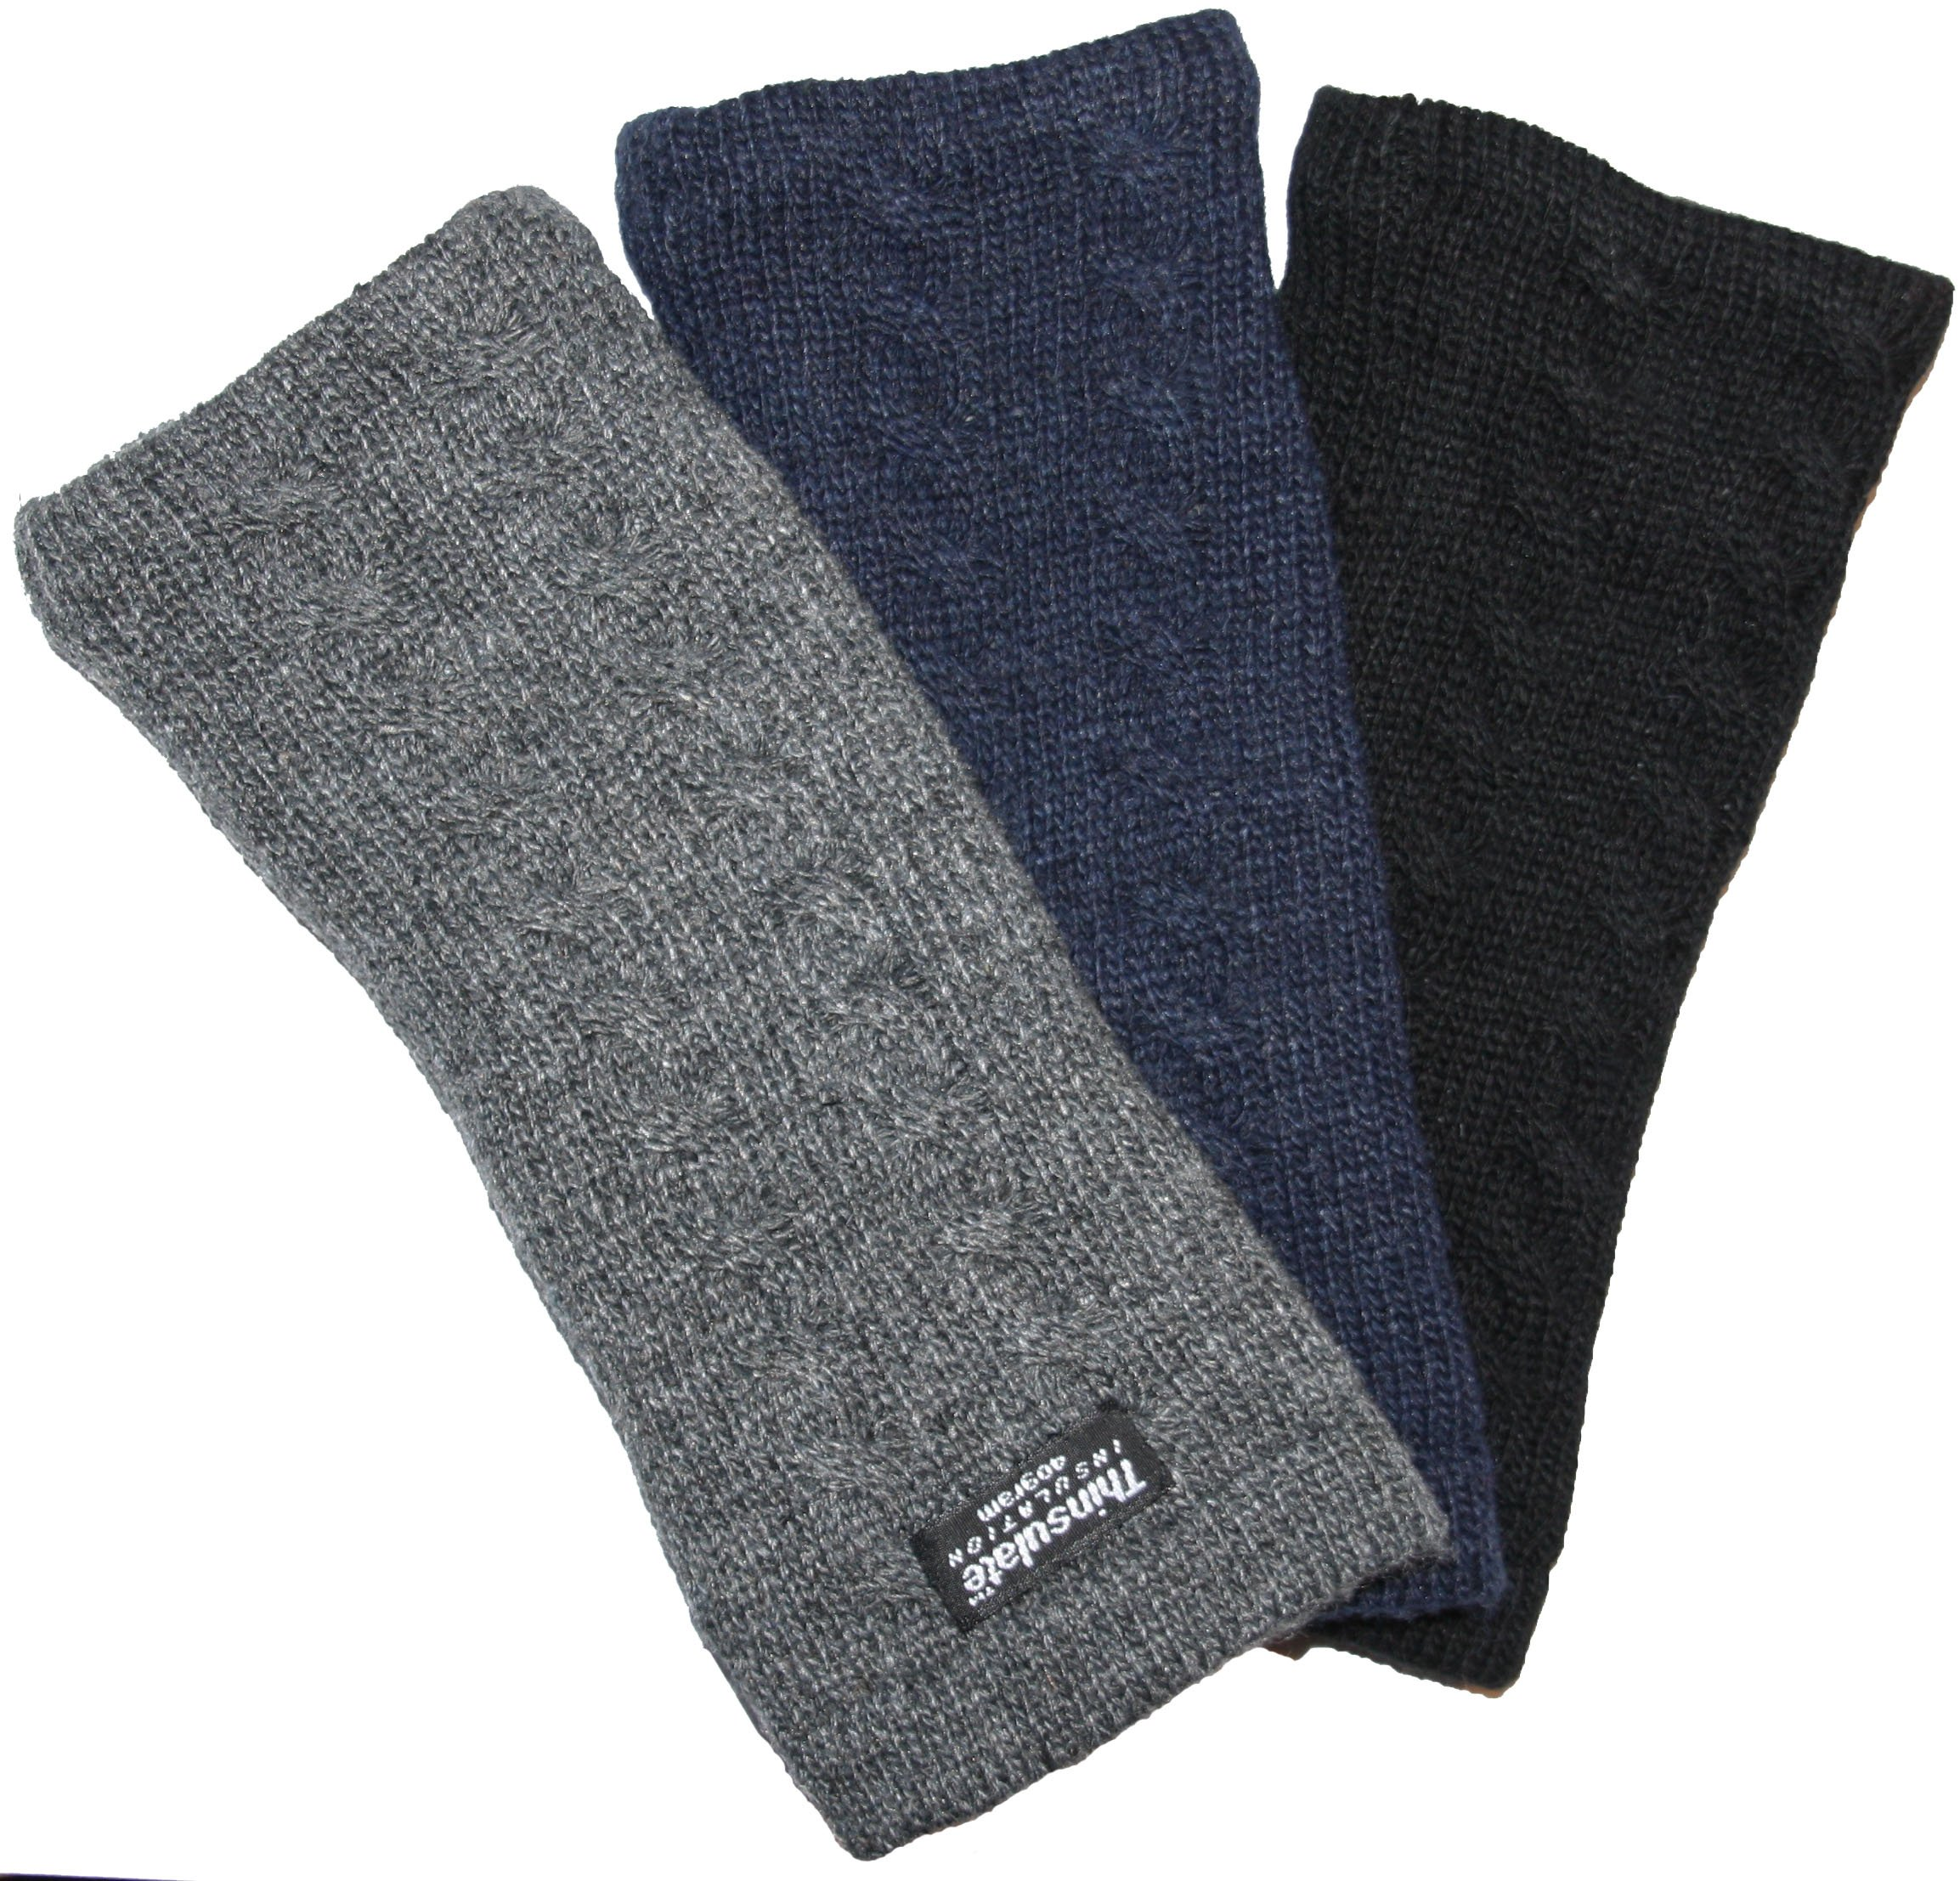 EEM knitted arm warmers DIANA made of 100% wool, Thinsulate lining, plait pattern, navy by EEM (Image #4)